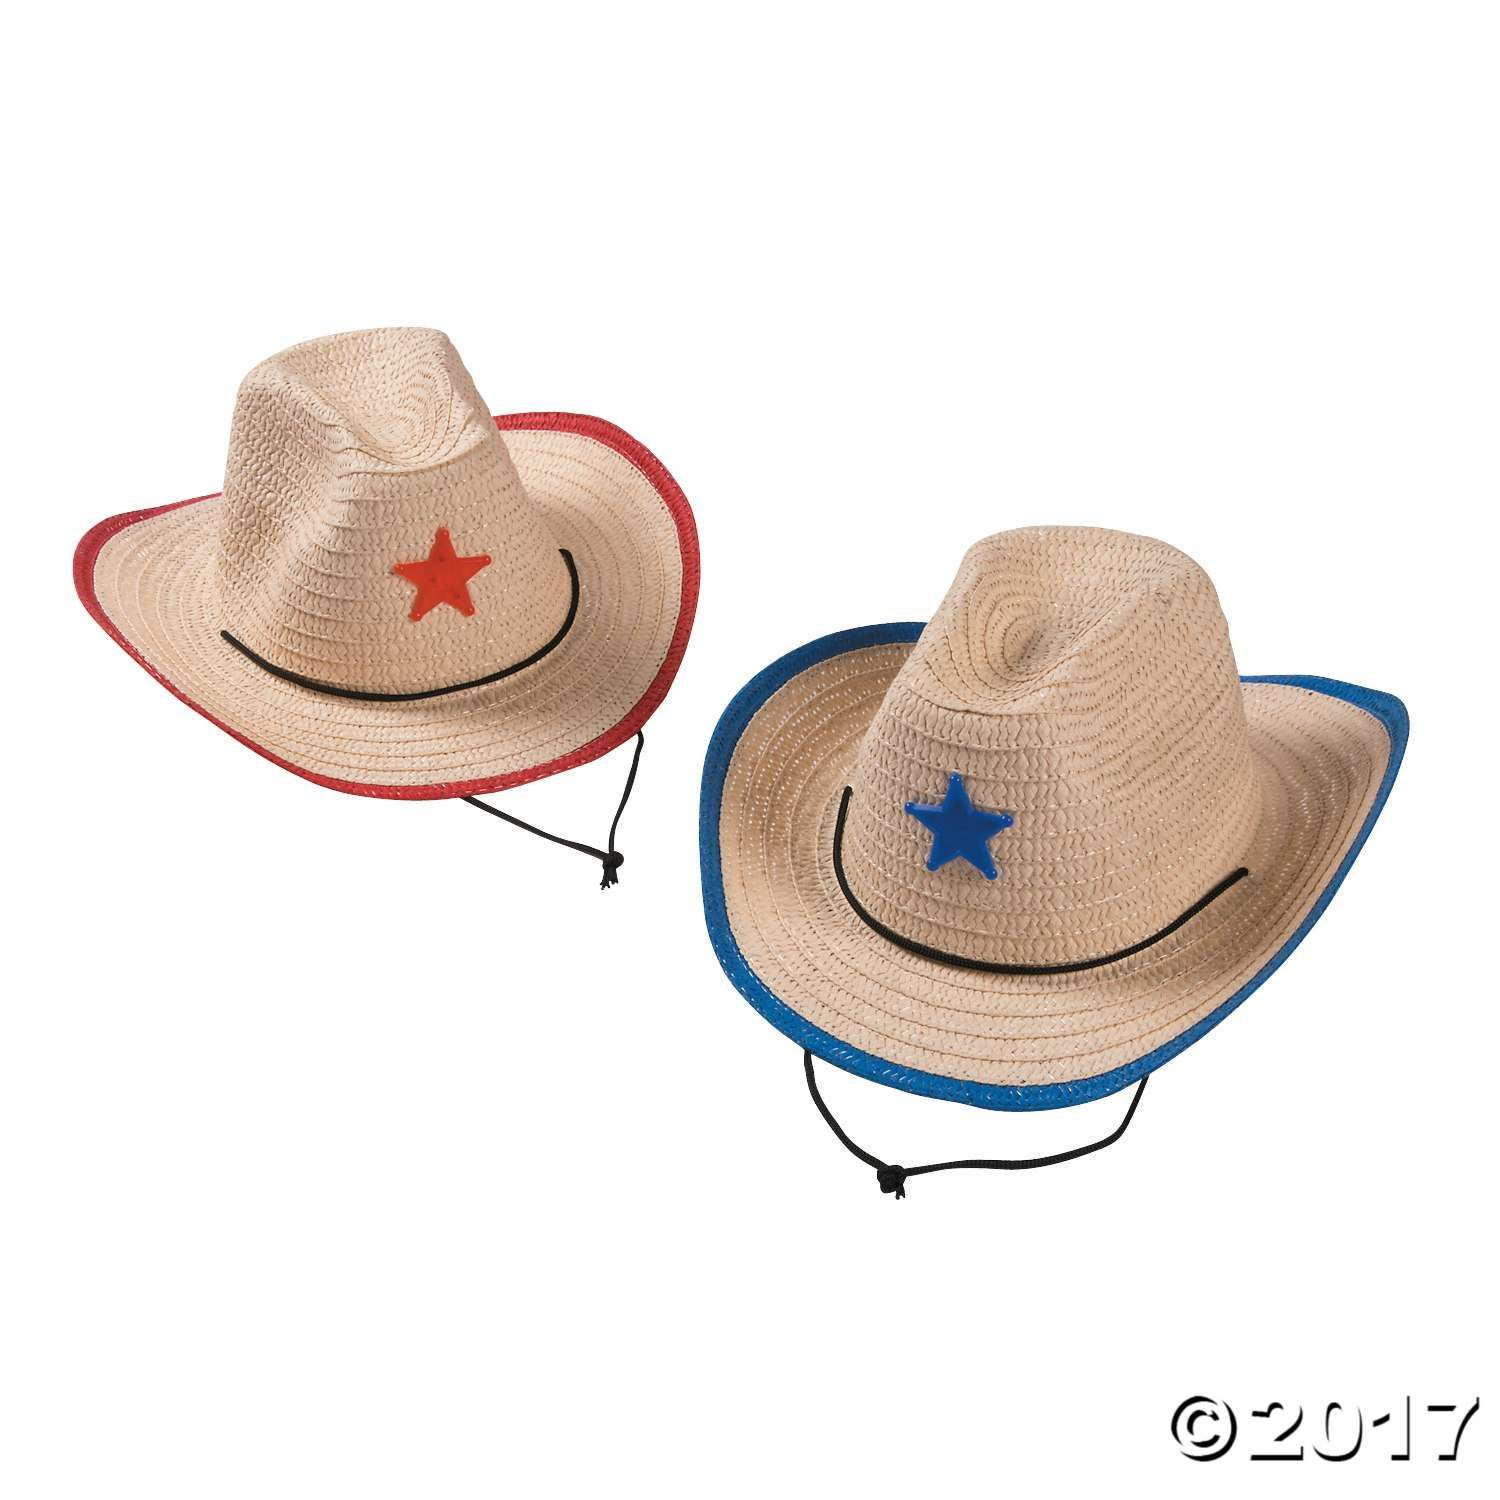 05082bb5 Have a Wild West time at your next rodeo! These kids' cowboy hats are fun  party favors, or use them as Halloween costume accessories. Children love  the .